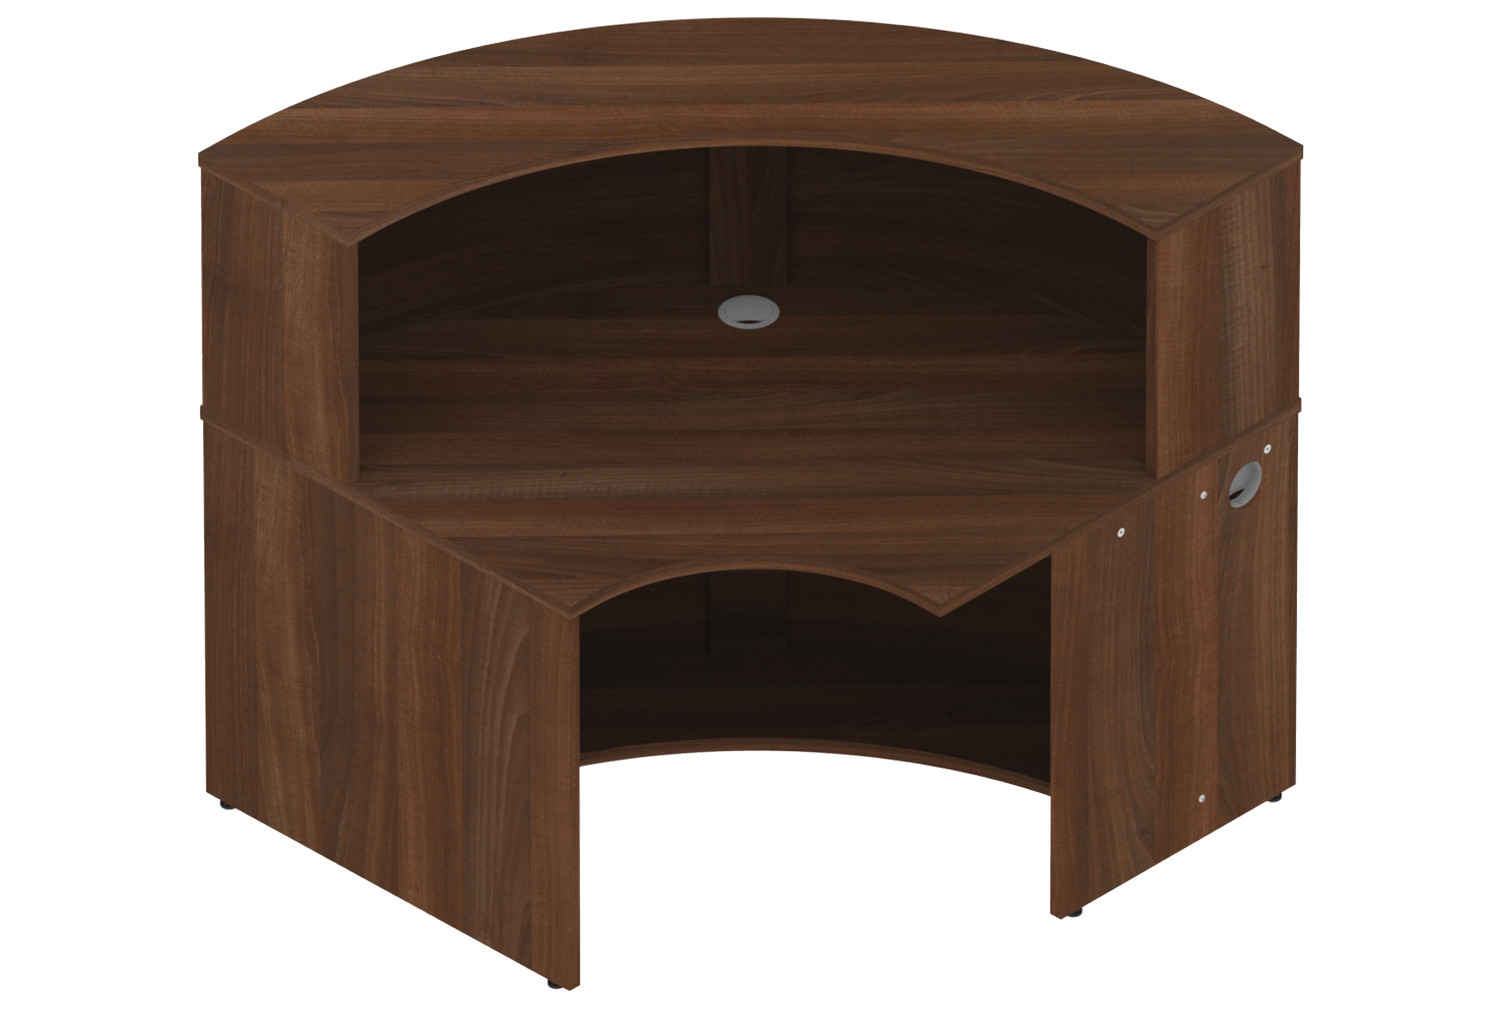 C - Welcome Corner Base Unit With Counter Top